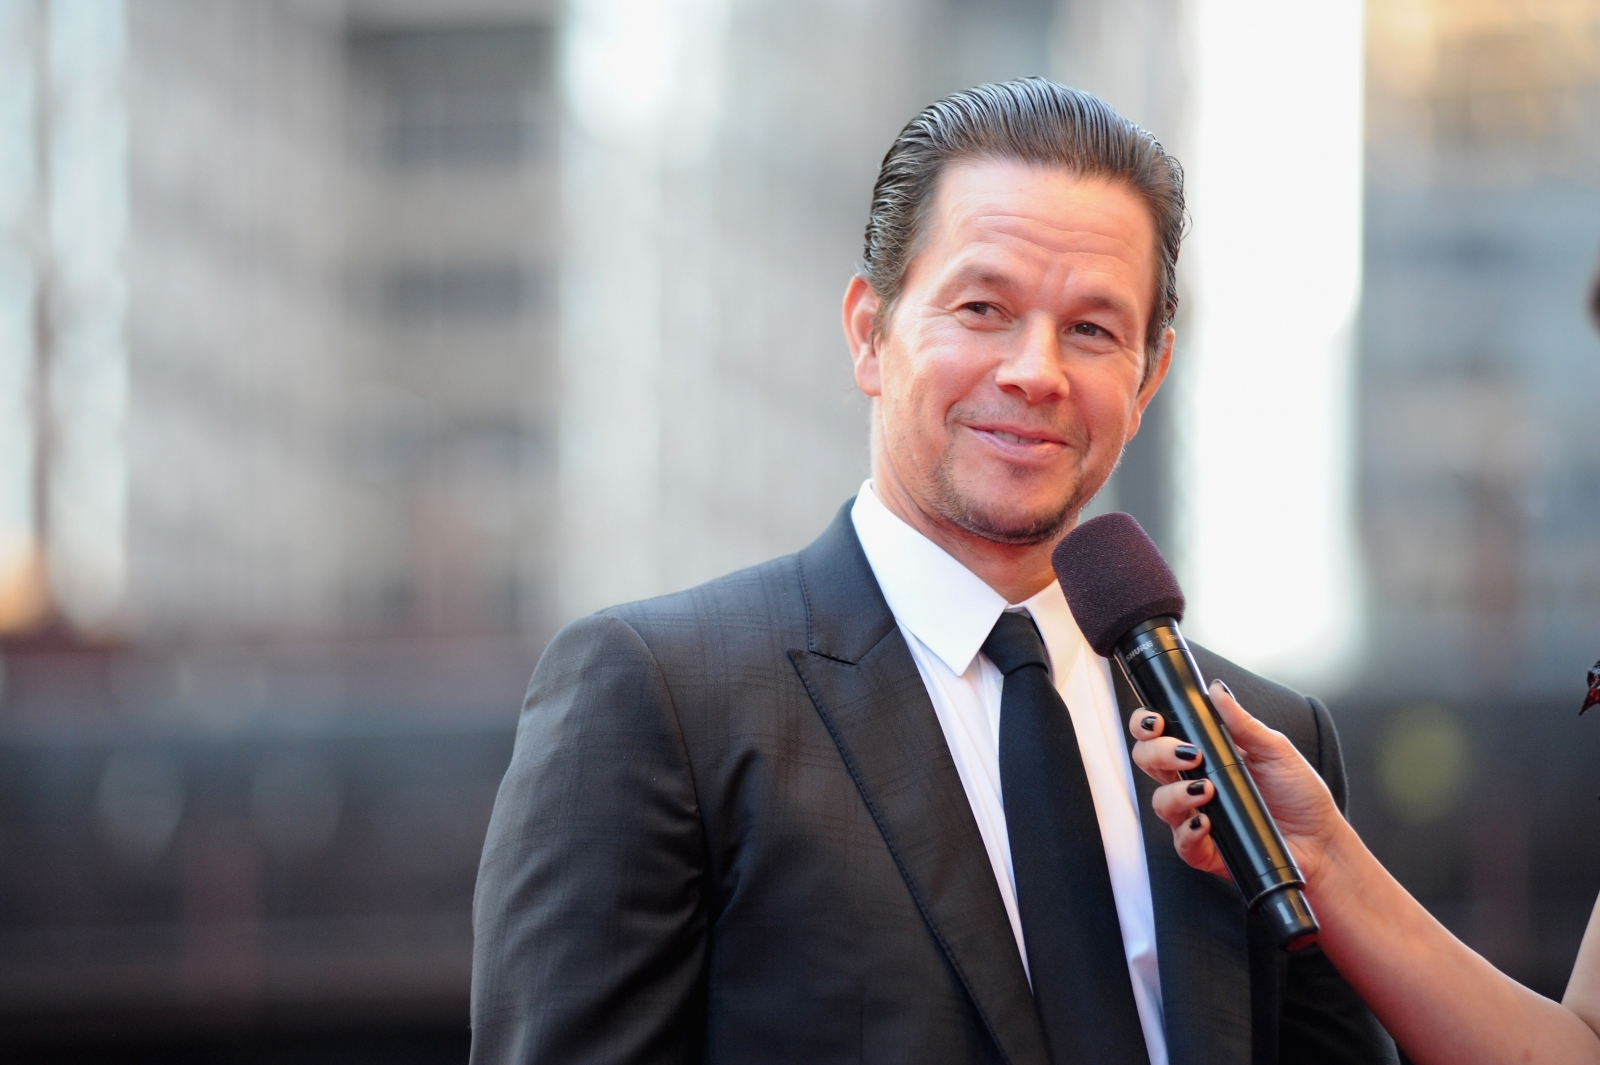 Mark Wahlberg named the world's highest-paid actor by Forbes